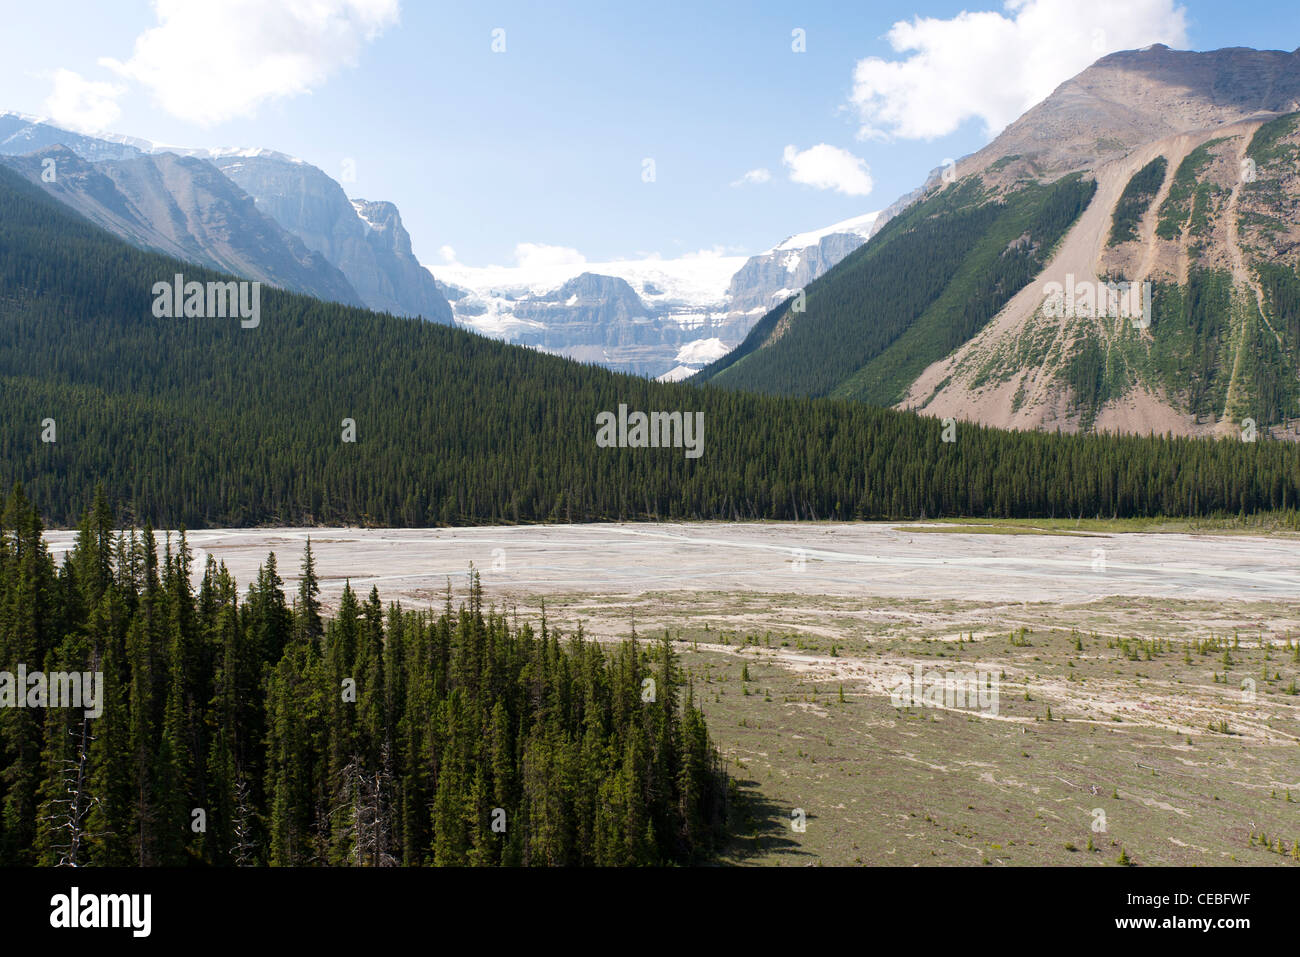 View of the Stutfield Glacier, seen from a viewpoint on Highway 93, the Icefields Parkway, Alberta, Canada - Stock Image